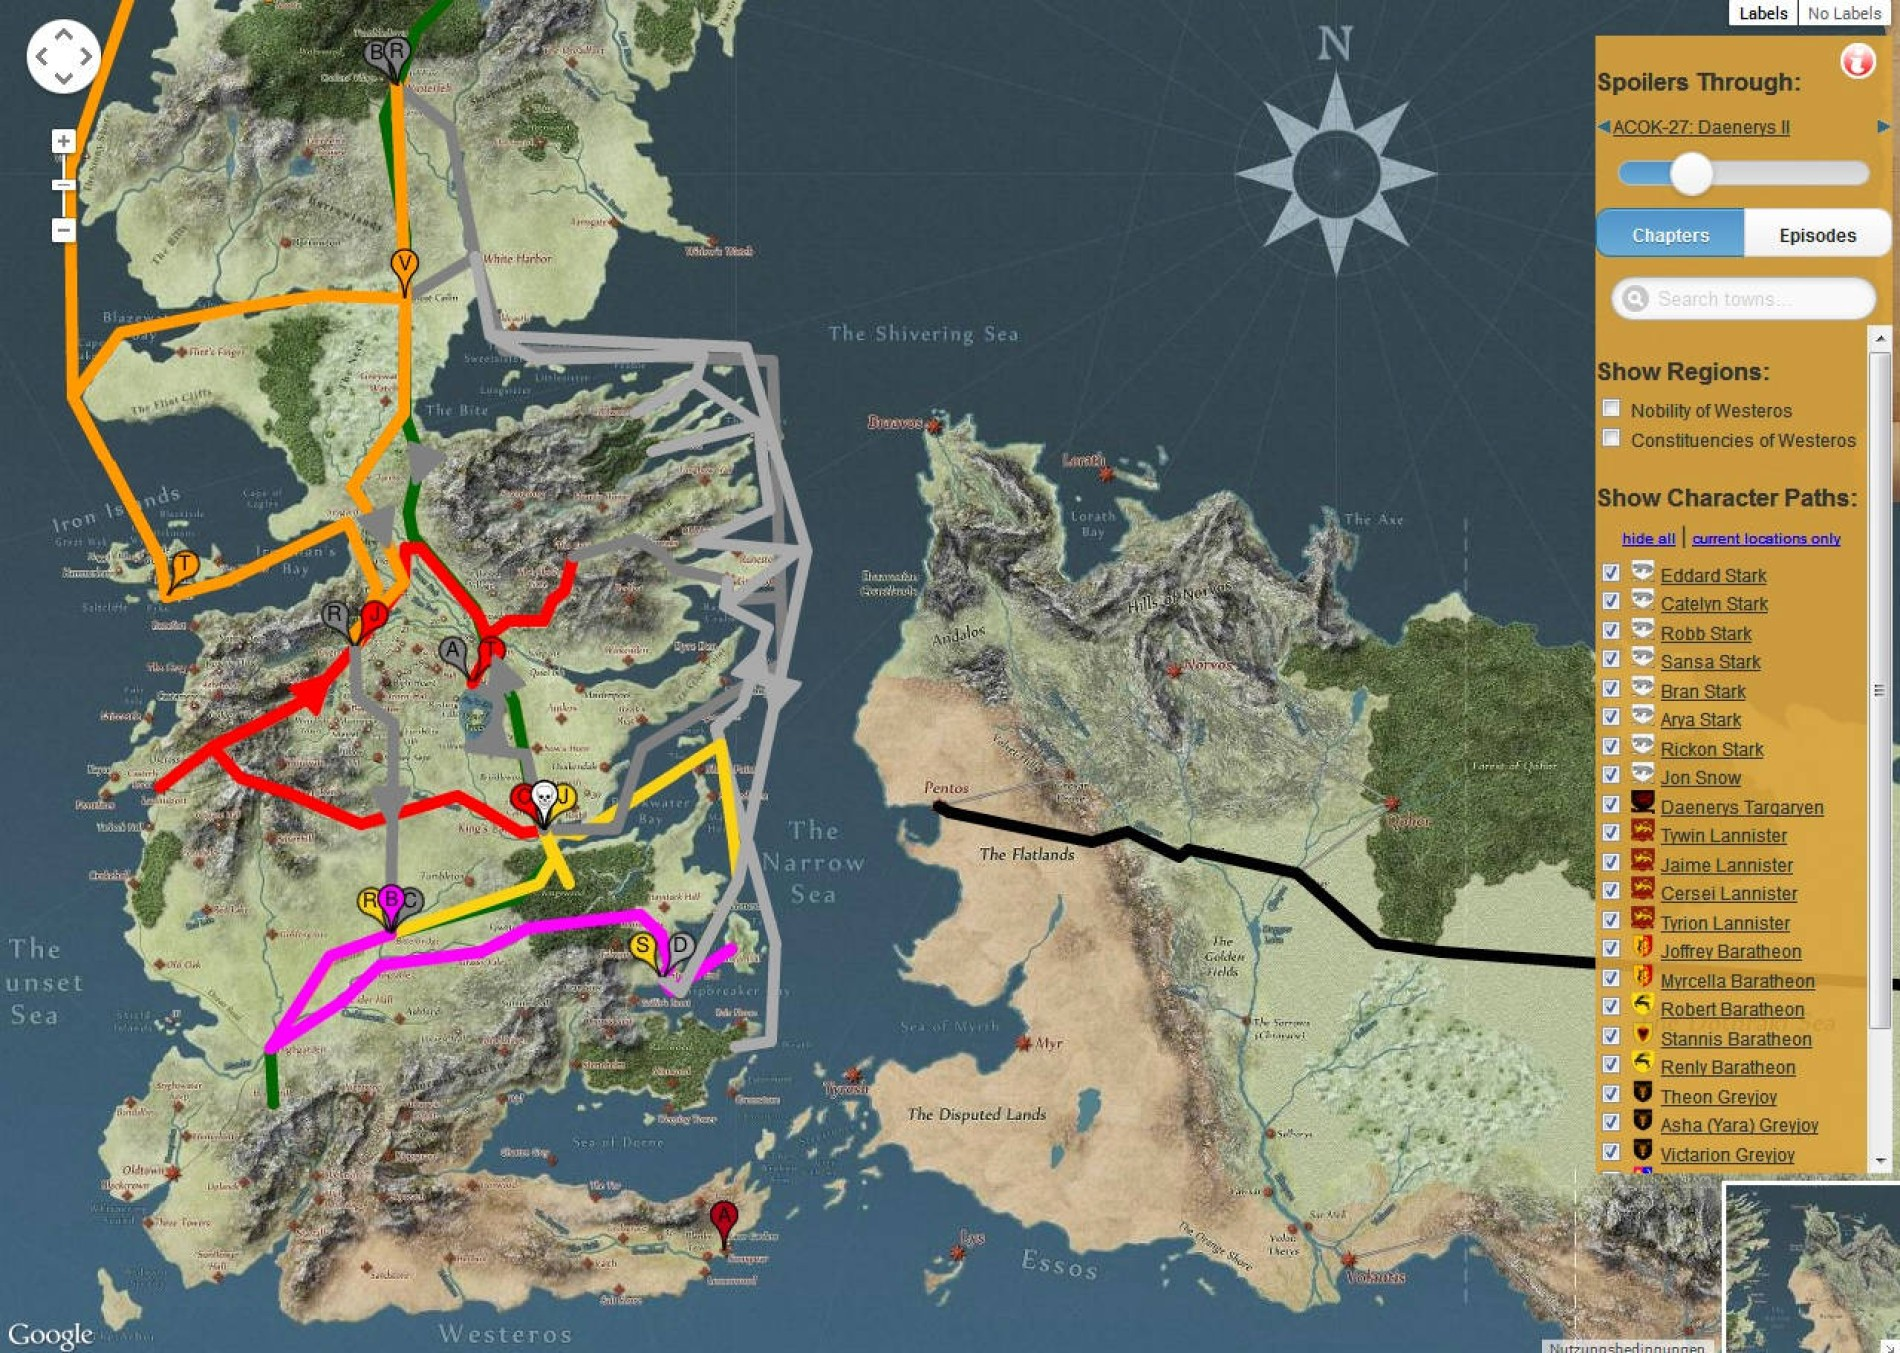 Westeros Karte Interaktiv.Fan Projekte Interaktive Game Of Thrones Karten